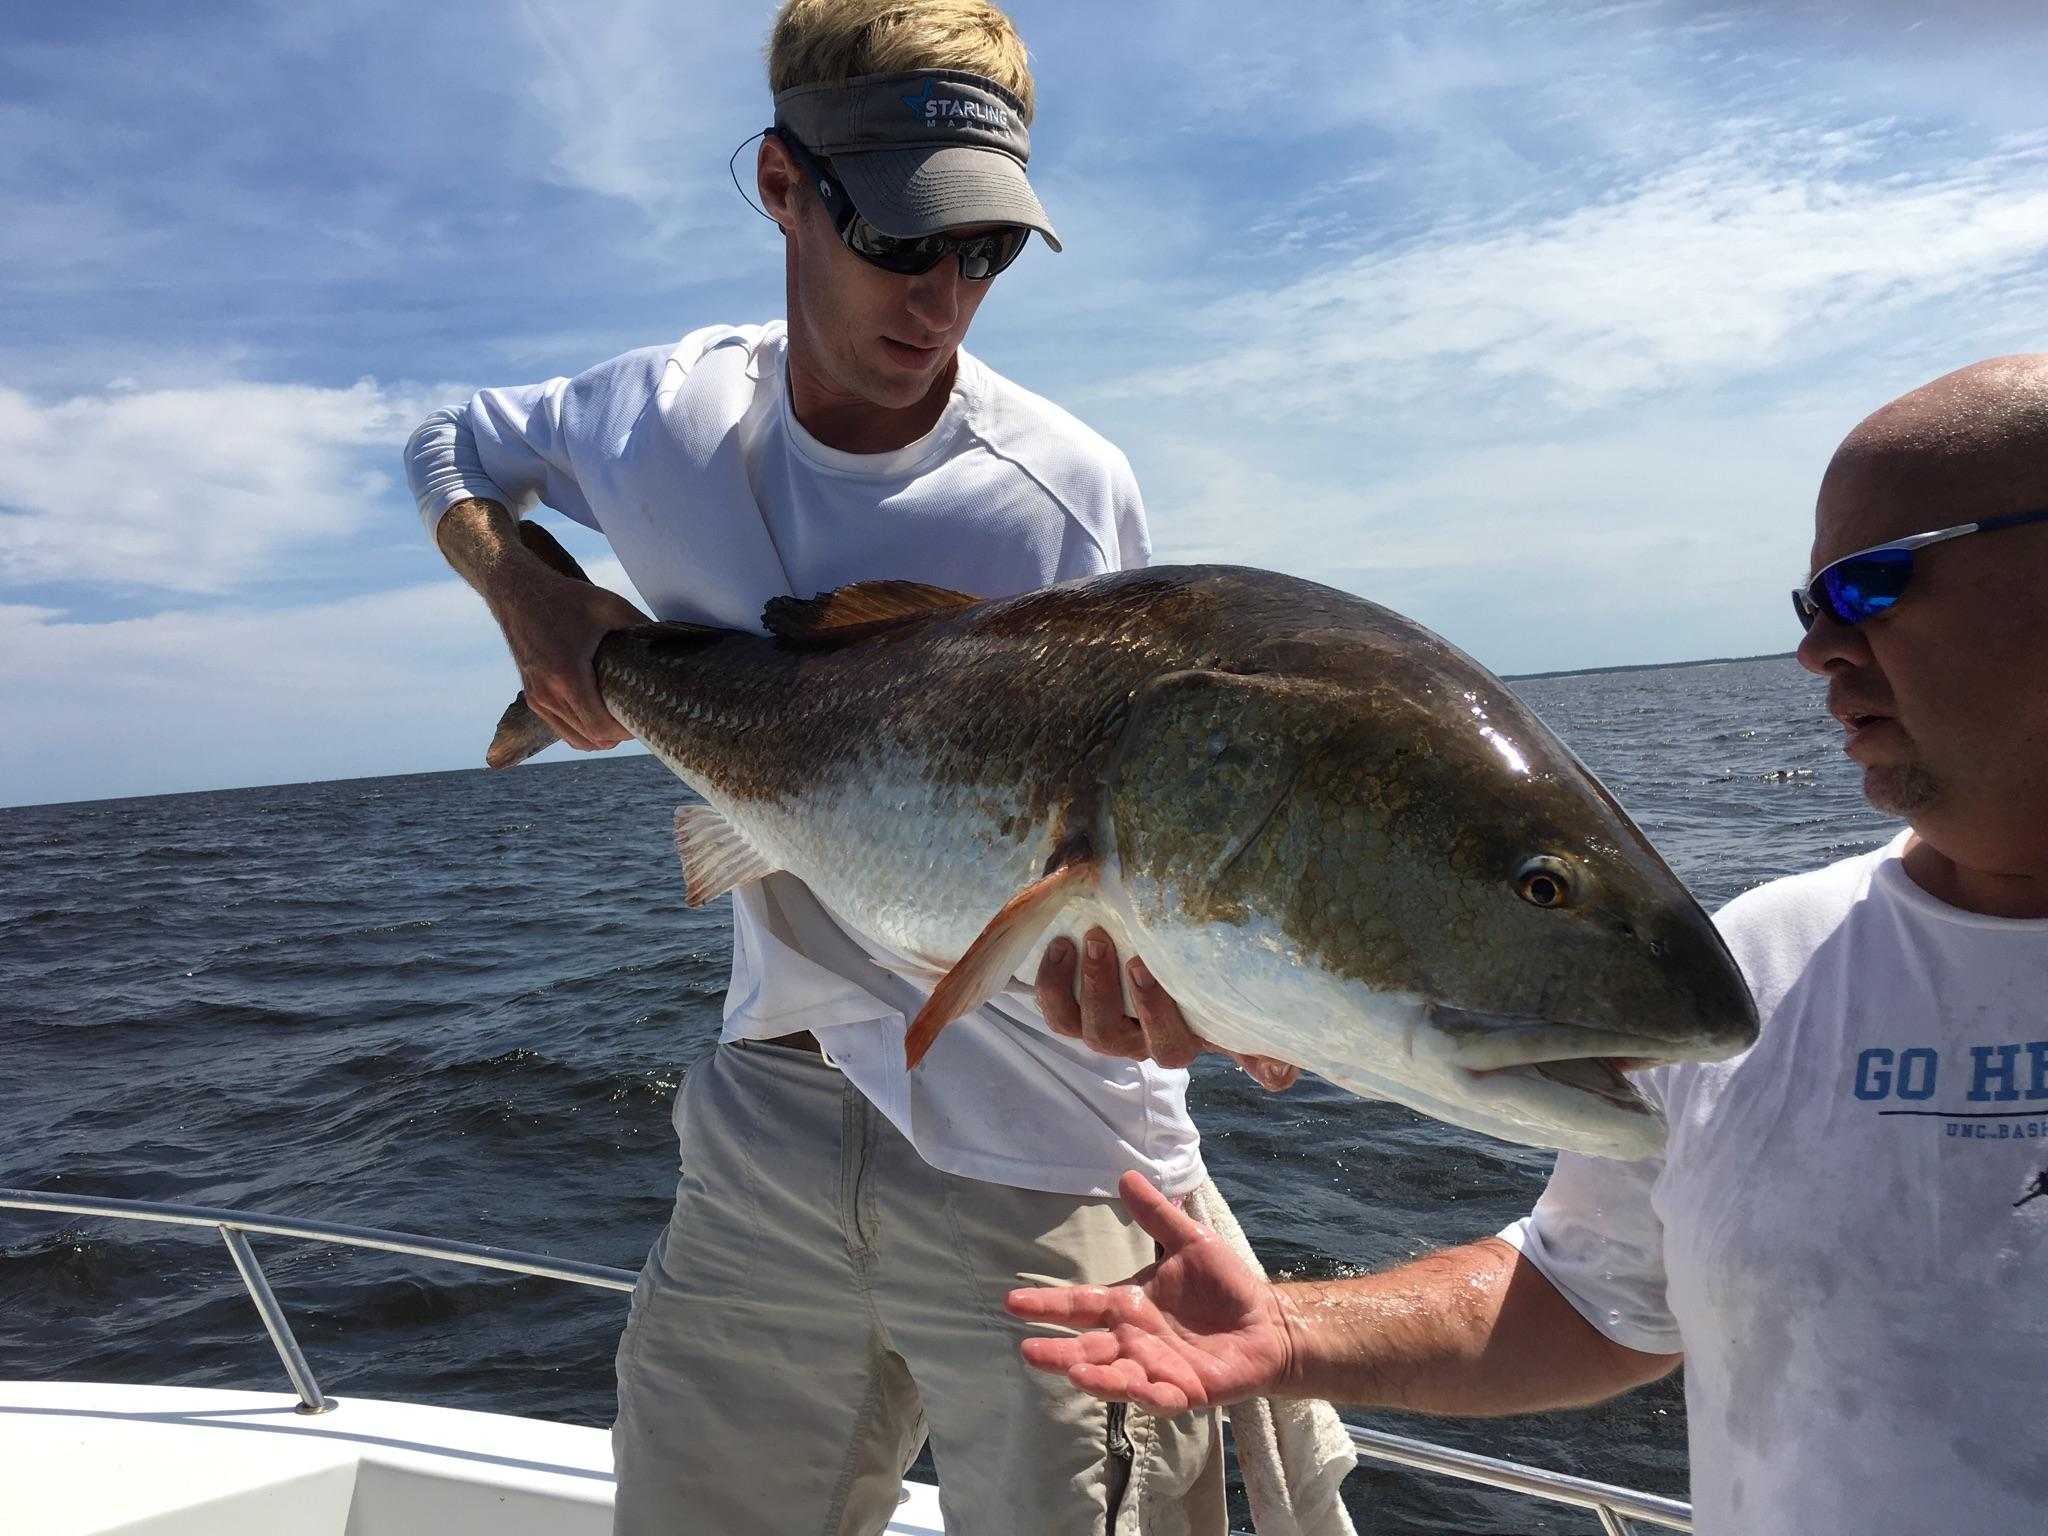 Casting for red drum on the neuse fishibx eastern nc for Northeast saltwater fishing reports